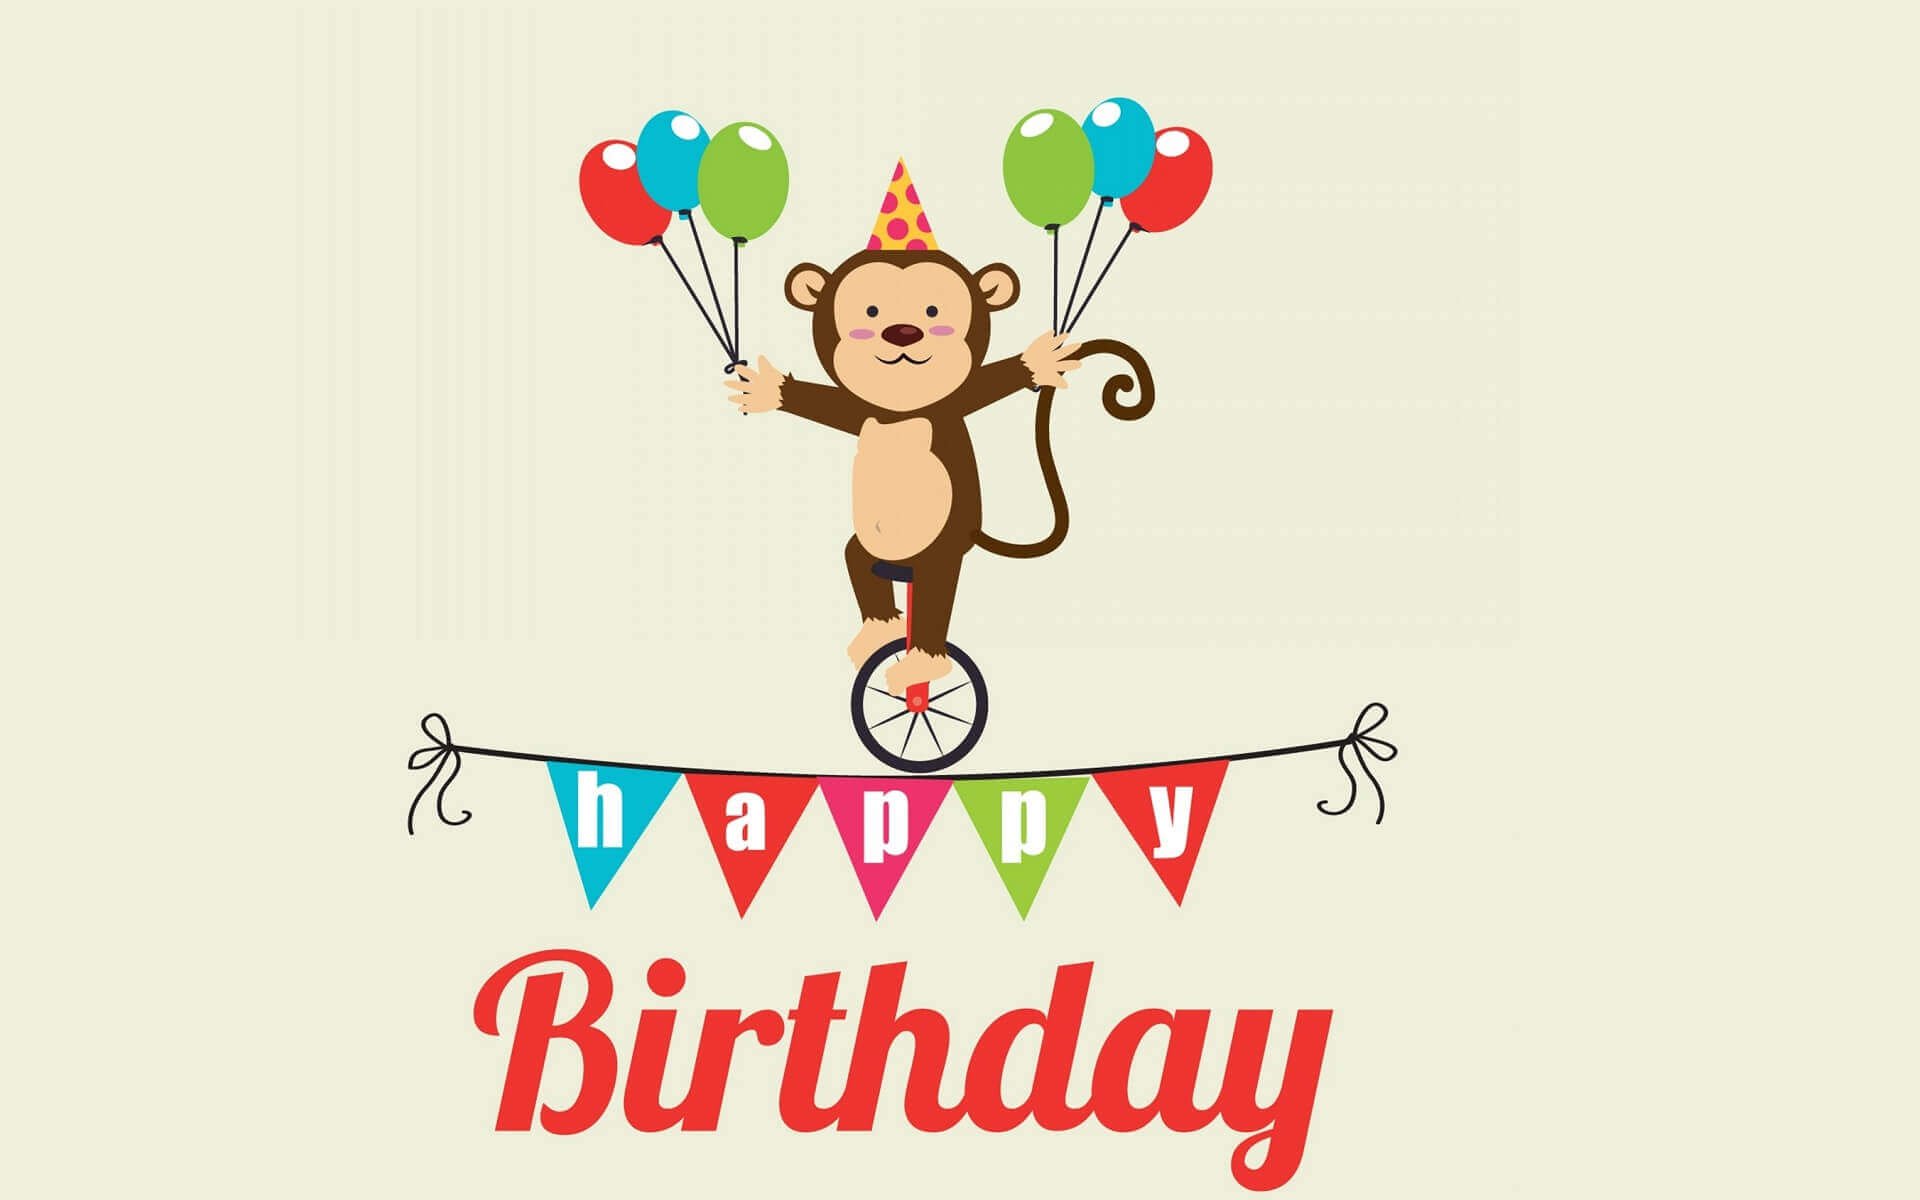 funny happy birthday wishes message ; bday-funny-wishes